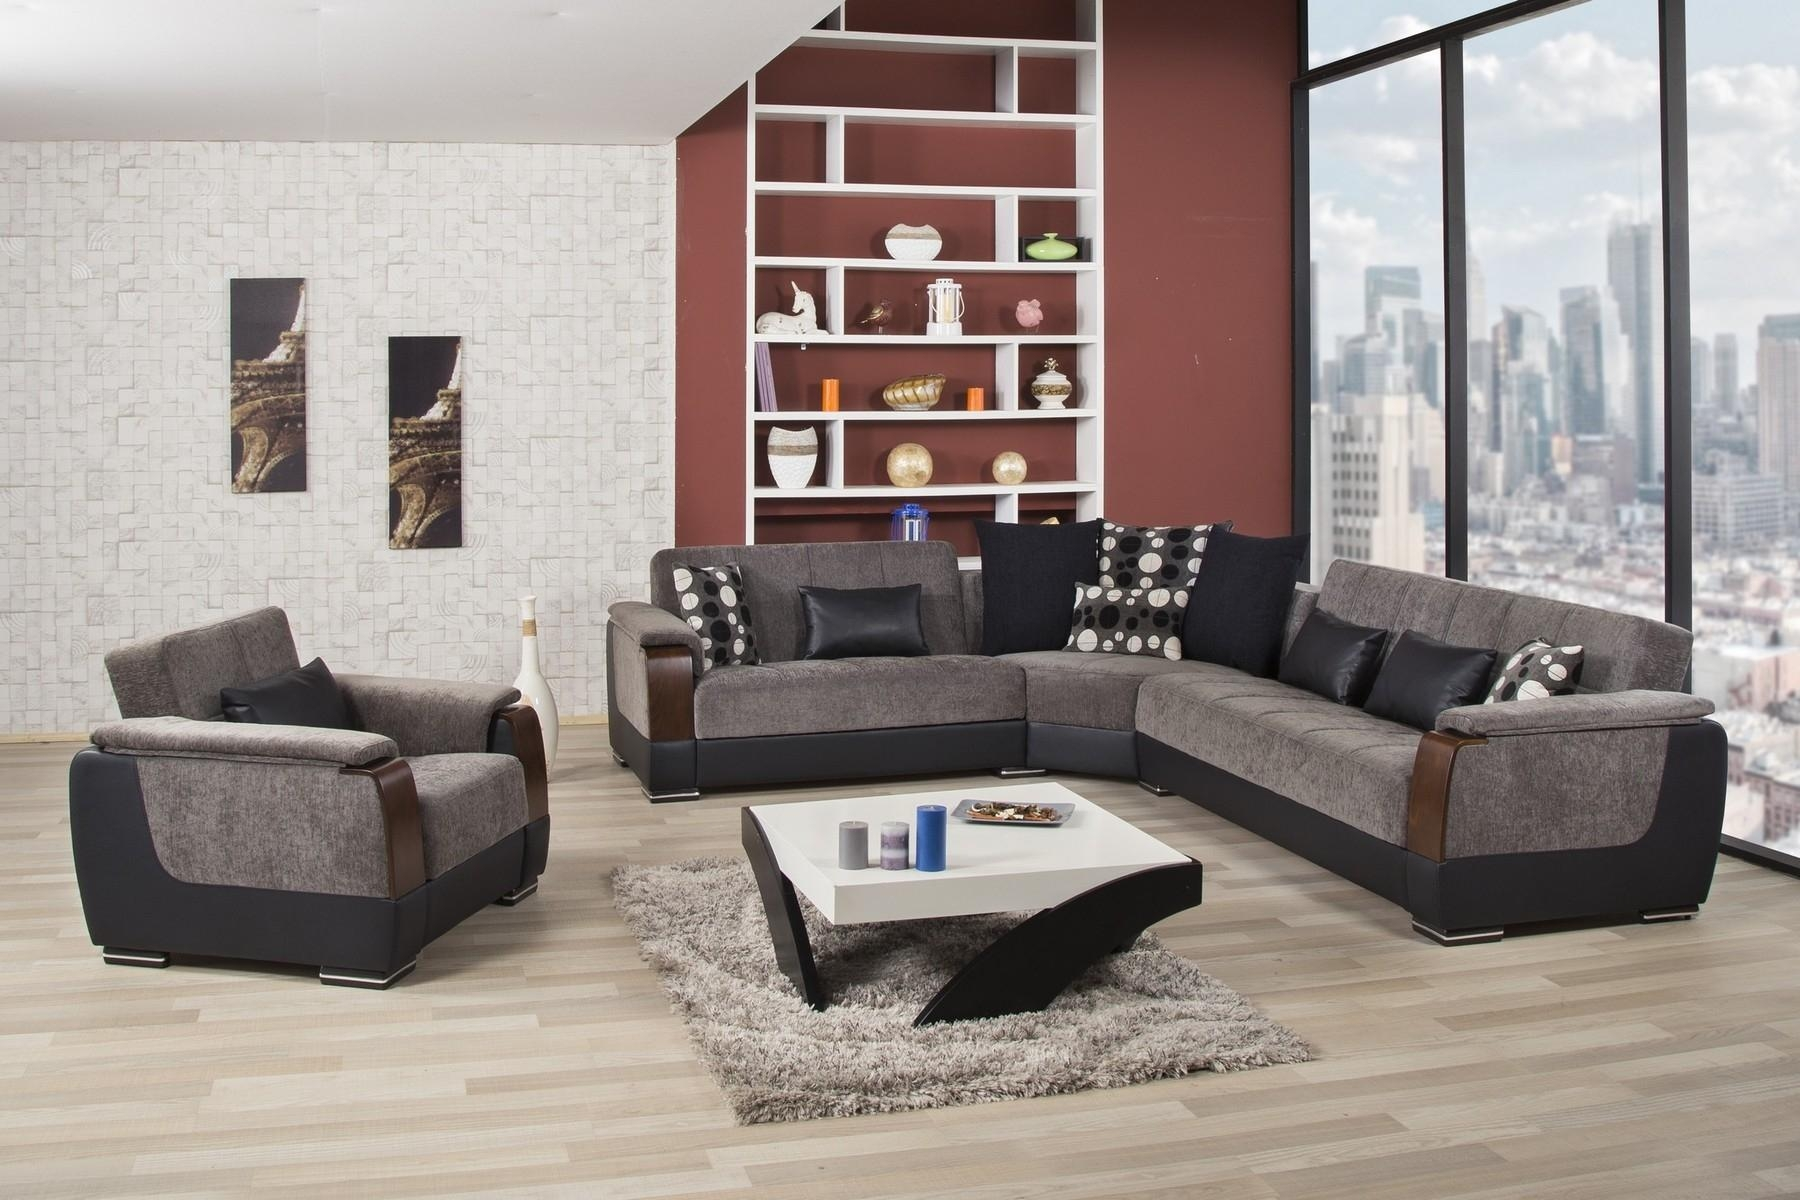 Furniture Home : Attractive Chocolate Brown Sectional Sofa With Within Chocolate Brown Sectional Sofa (Image 6 of 15)